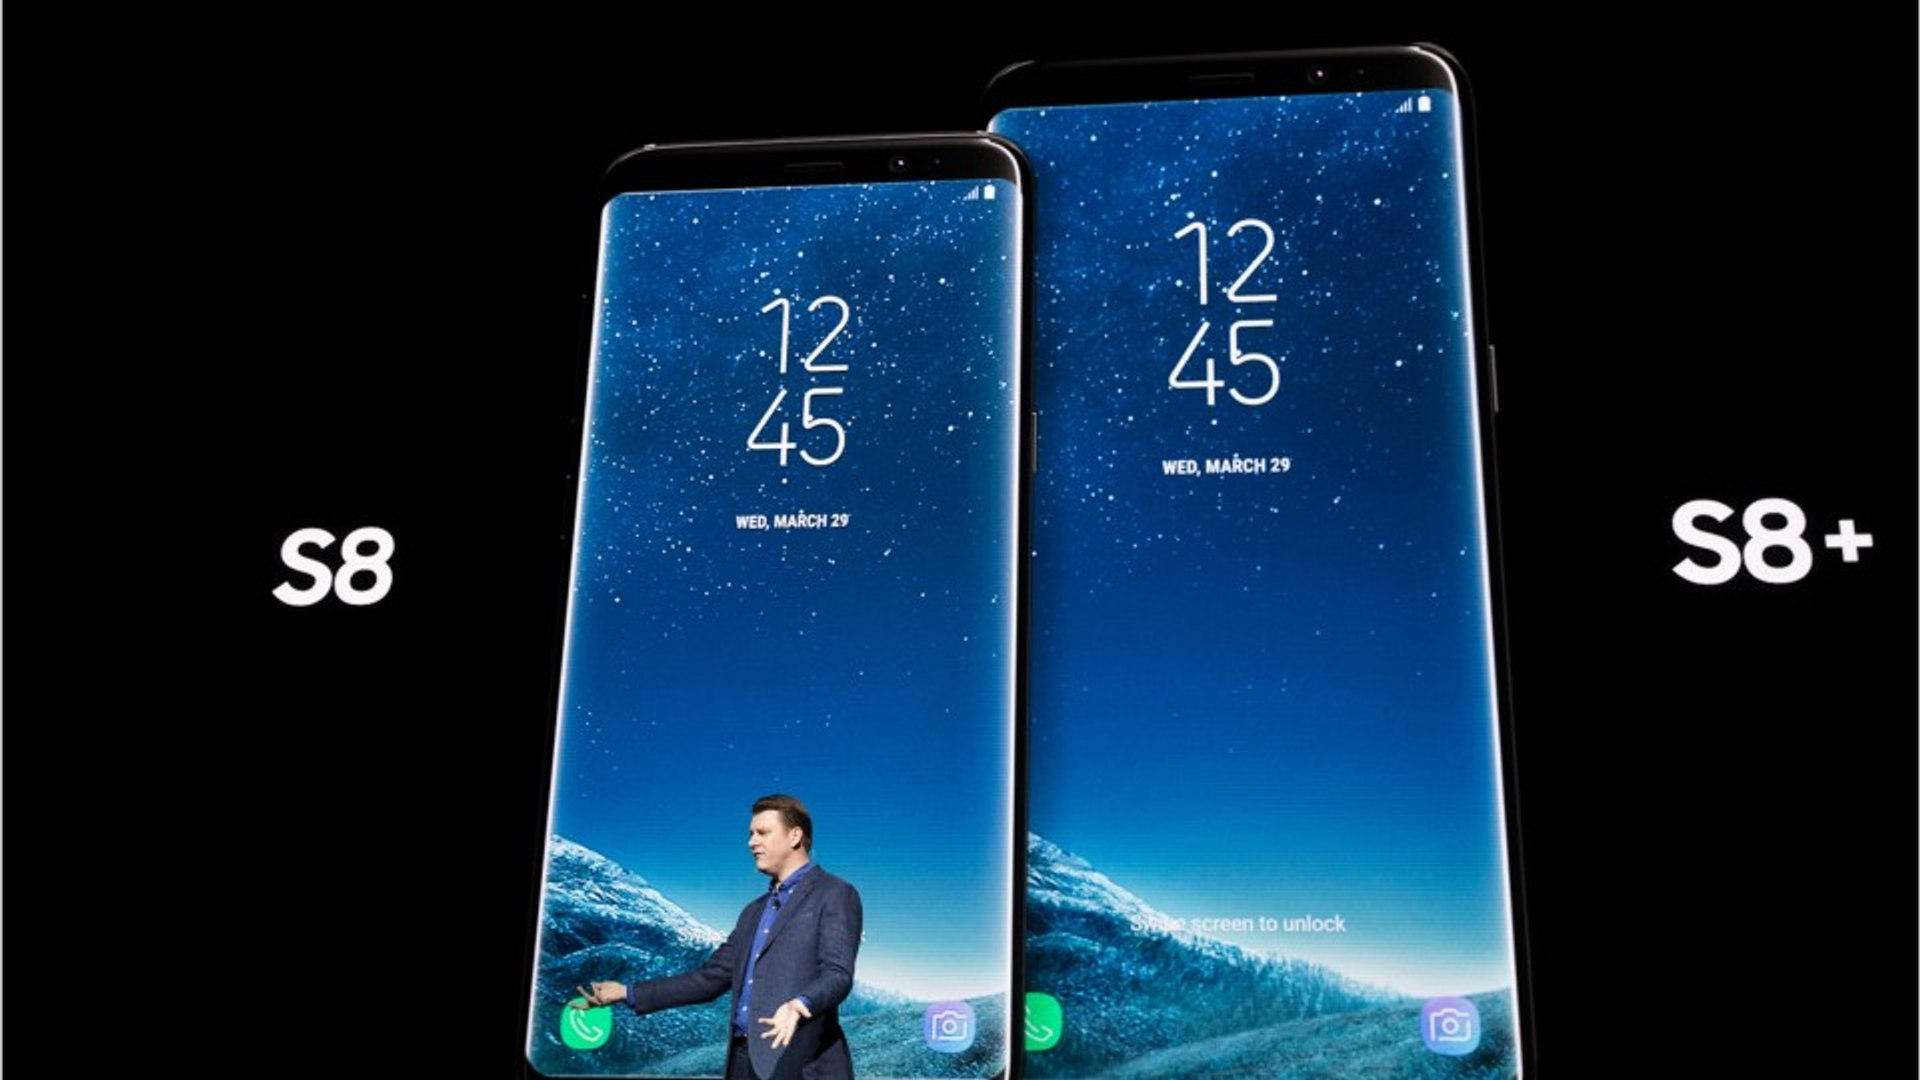 Samsung Galaxy S8 vs Samsung Galaxy S8 Plus: what's the difference?